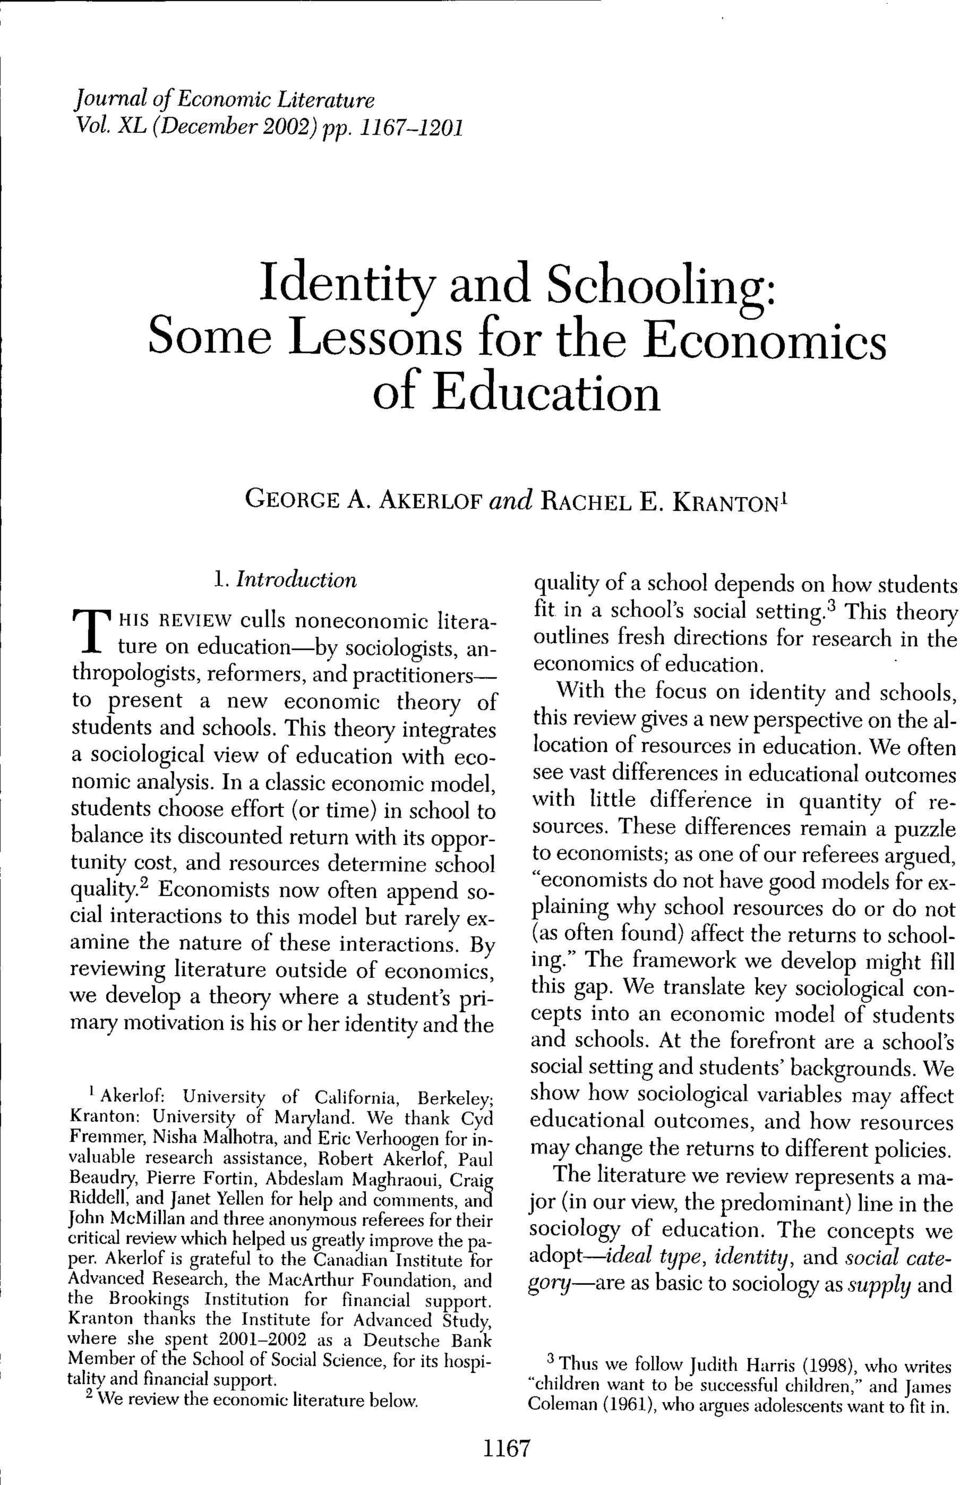 This theory integrates a sociological view of education with economic analysis.